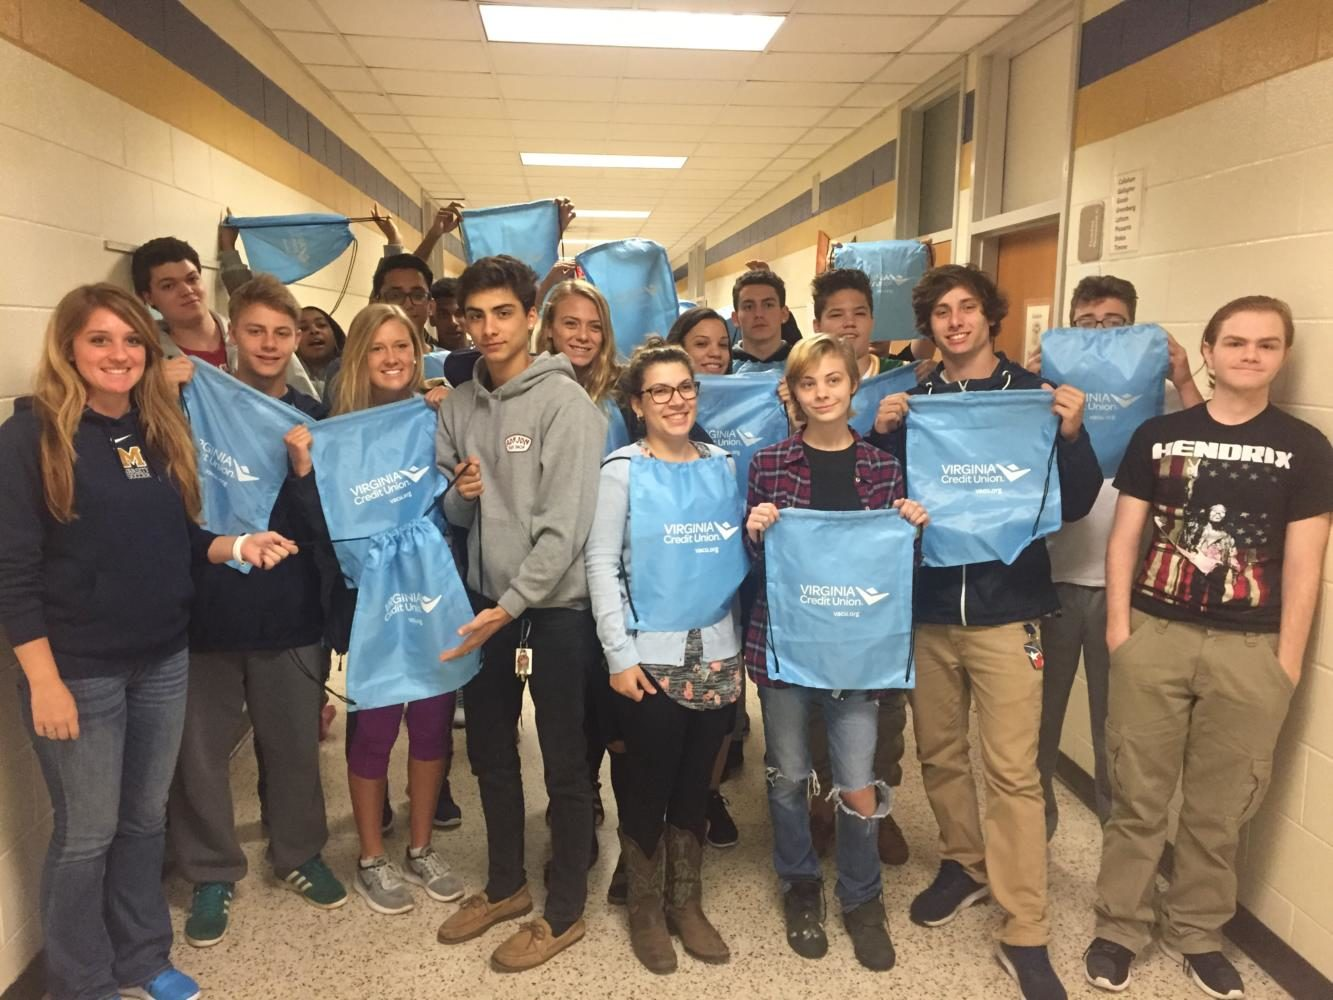 Ms.+Kramer%27s+class+shows+off+their+drawstring+bags+from+Virginia+Credit+Union.